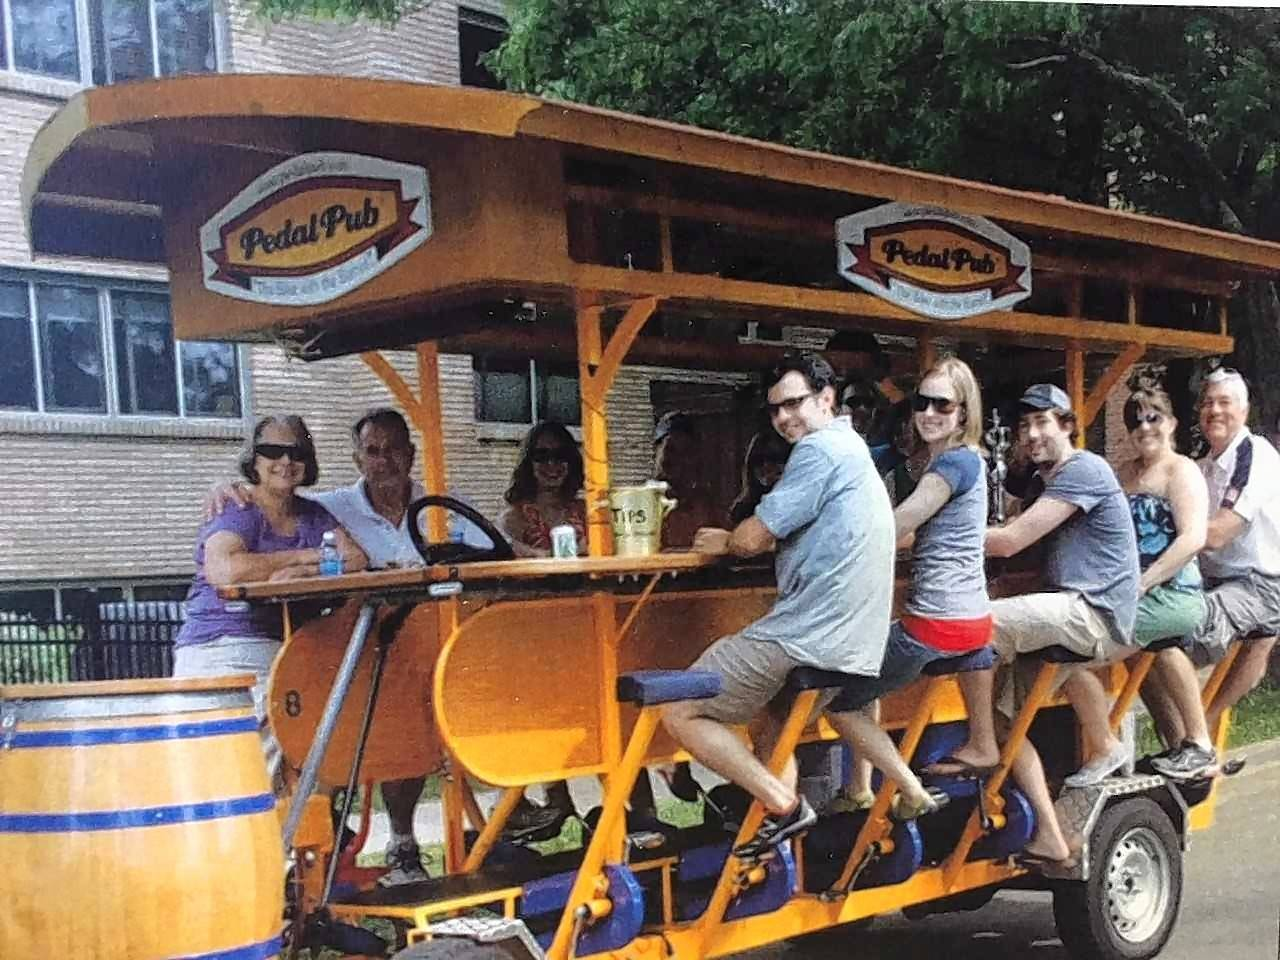 Naperville resident Monica Bennett, owner of O'Brien's Pedal Pub, plans to begin offering tours of downtown Naperville on a large multiperson bicycle on St. Patrick's Day 2018. She plans to launch the business without the ability for customers to bring their own drinks to consume while onboard the pub.